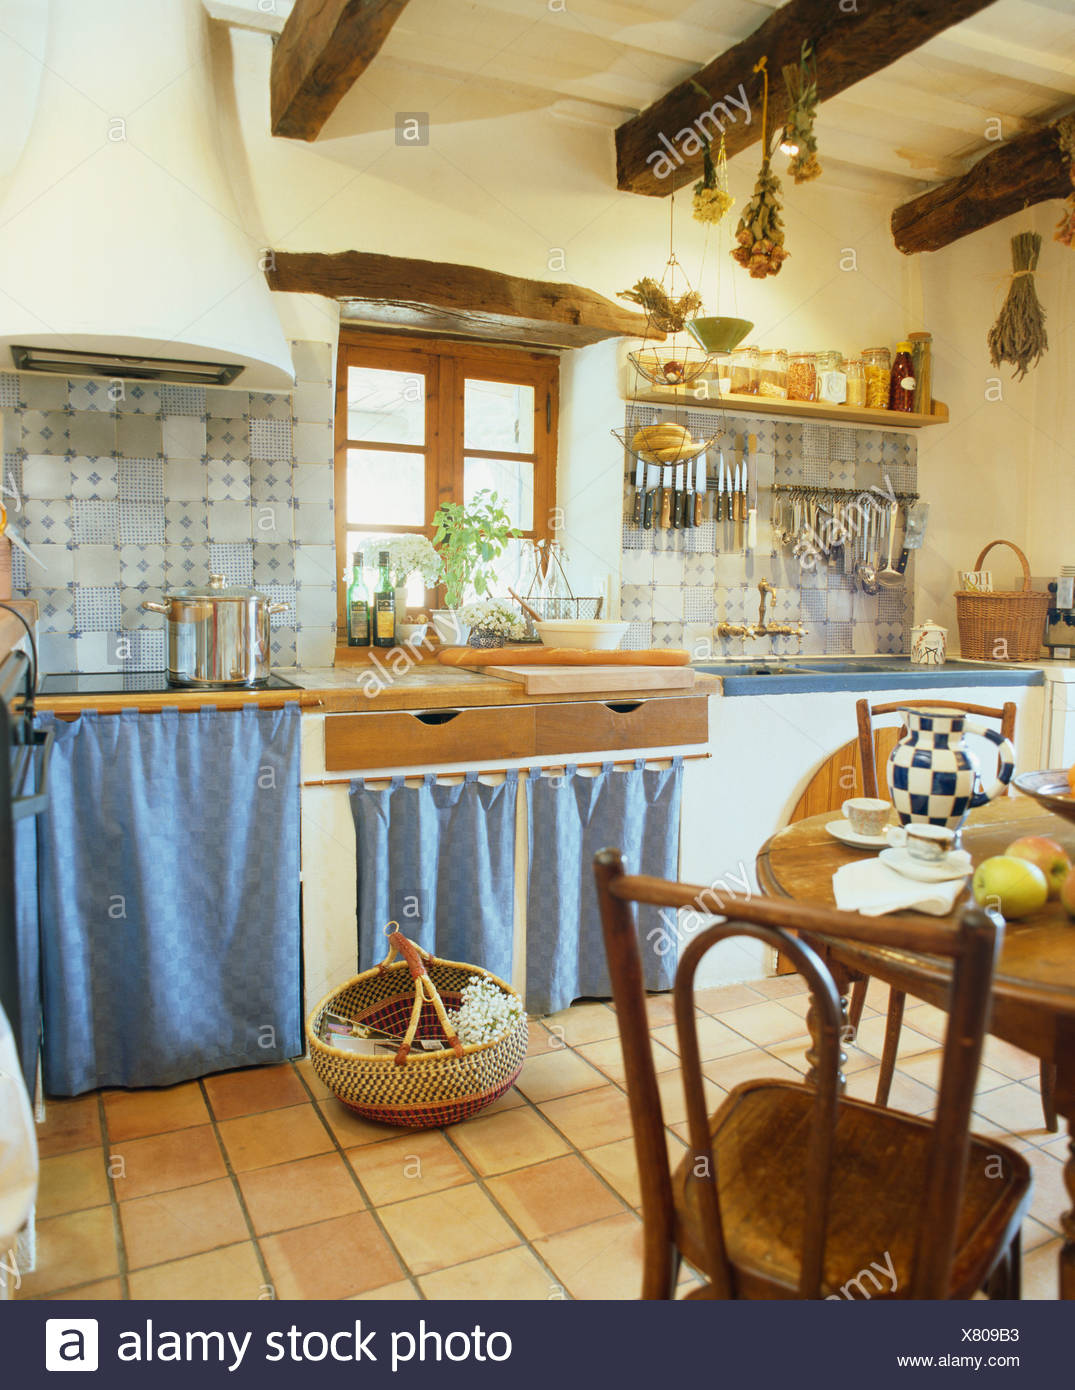 Blue Curtains On Cupboards In French Country Kitchen With Terracotta Tiled Floor And Simple Wooden Chairs And Table Stock Photo Alamy